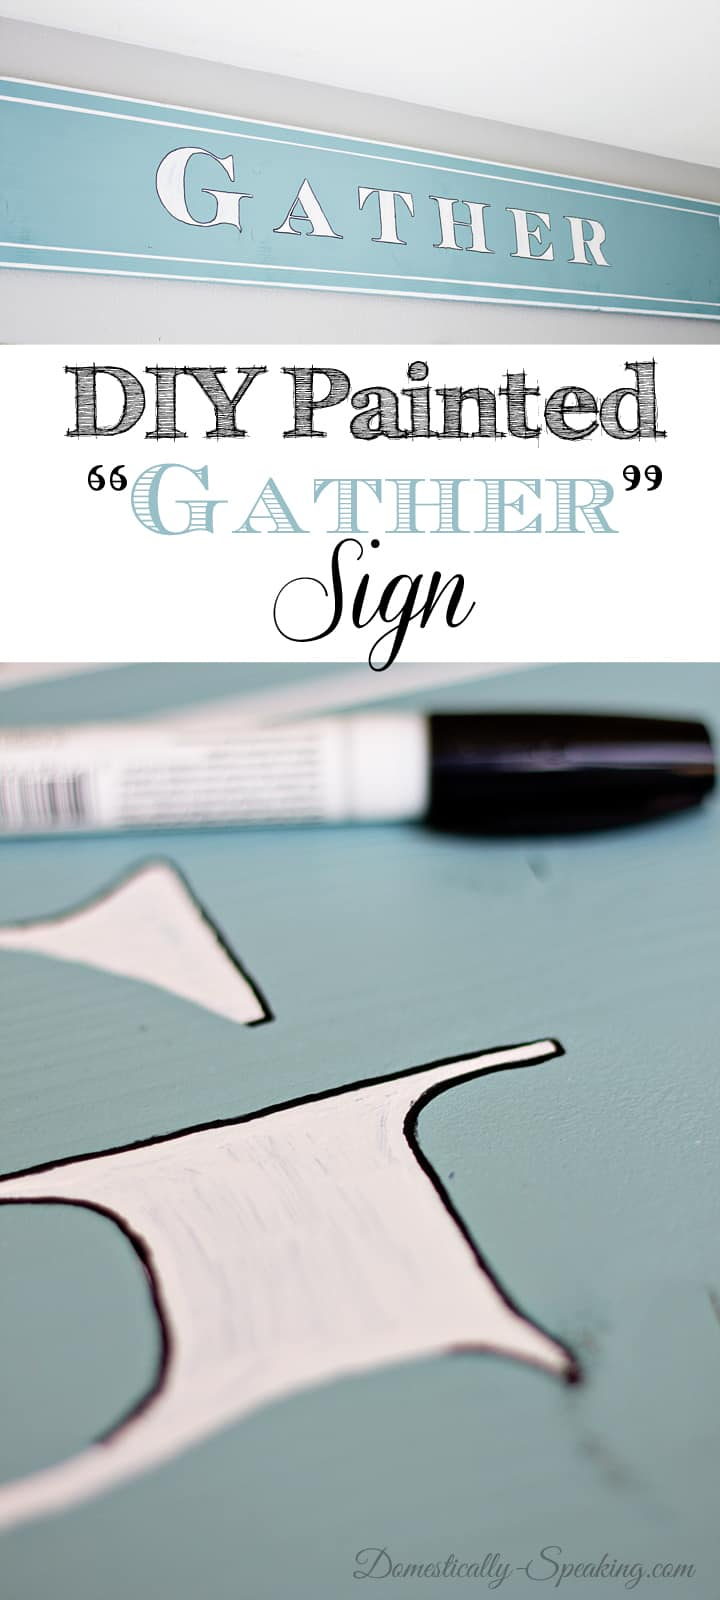 DIY Painted Gather Wood Sign 15